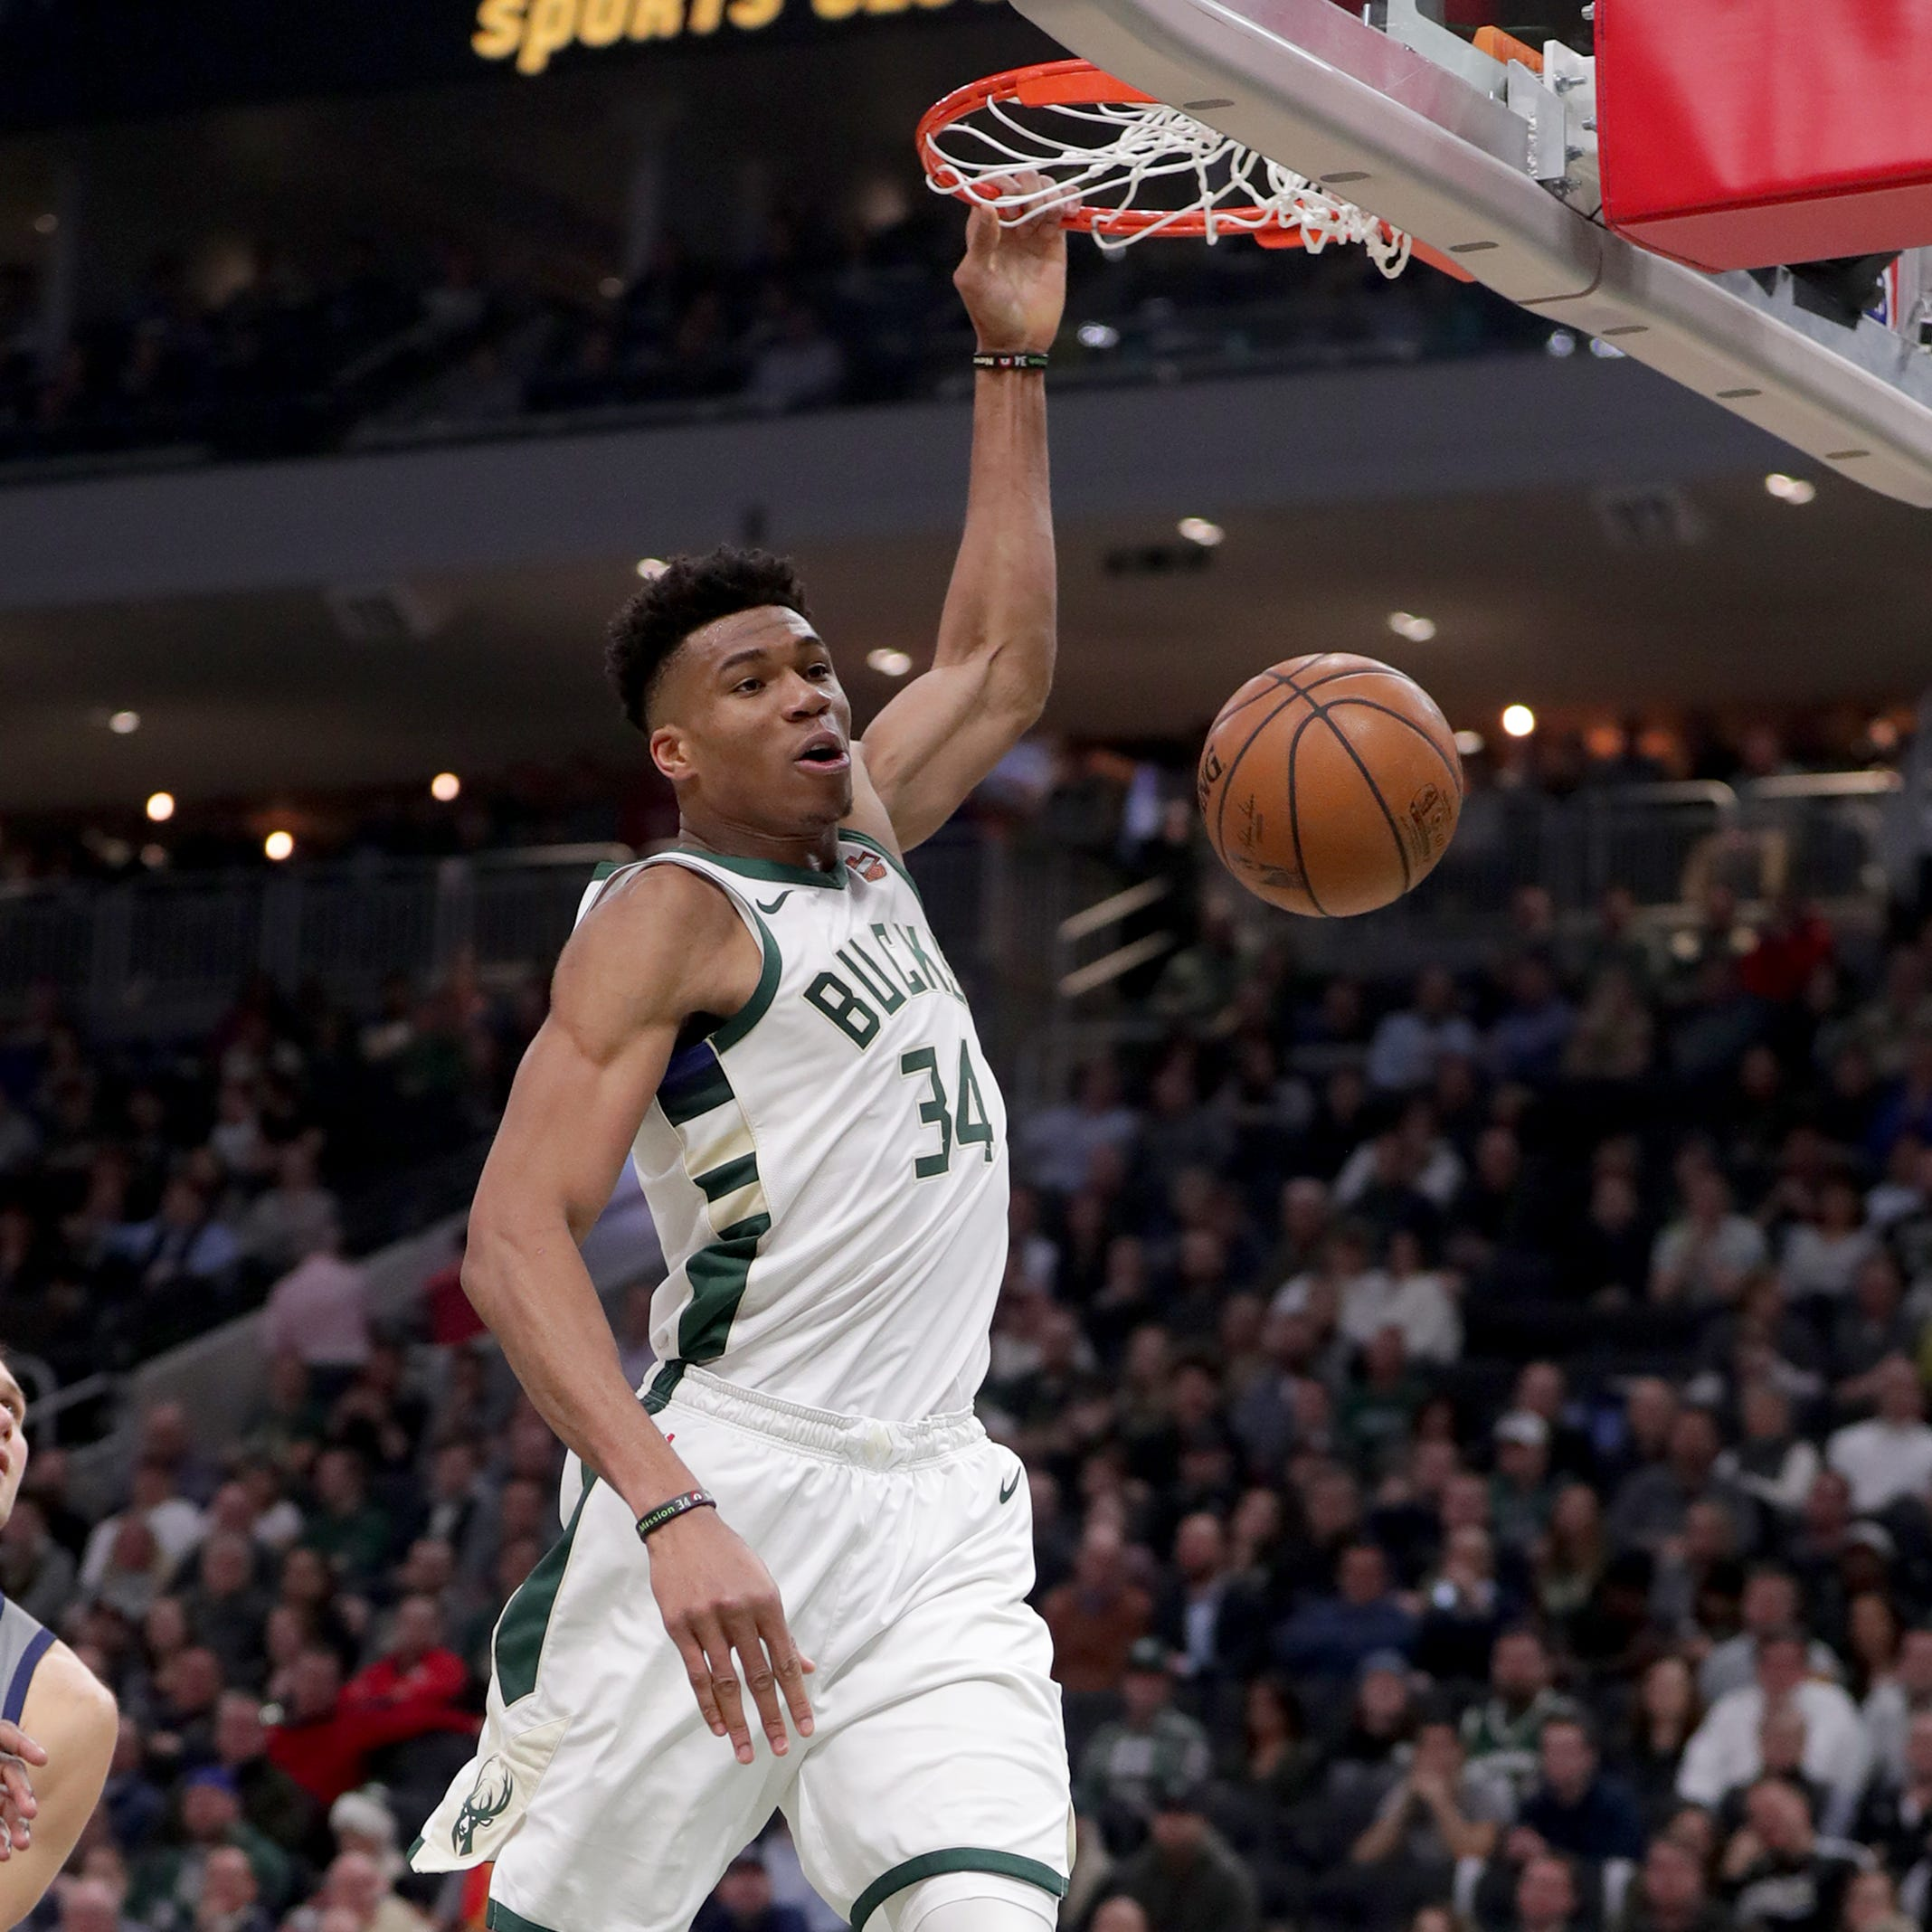 Bucks 117, Pacers 98: Technically speaking, Giannis' outburst turned the tide